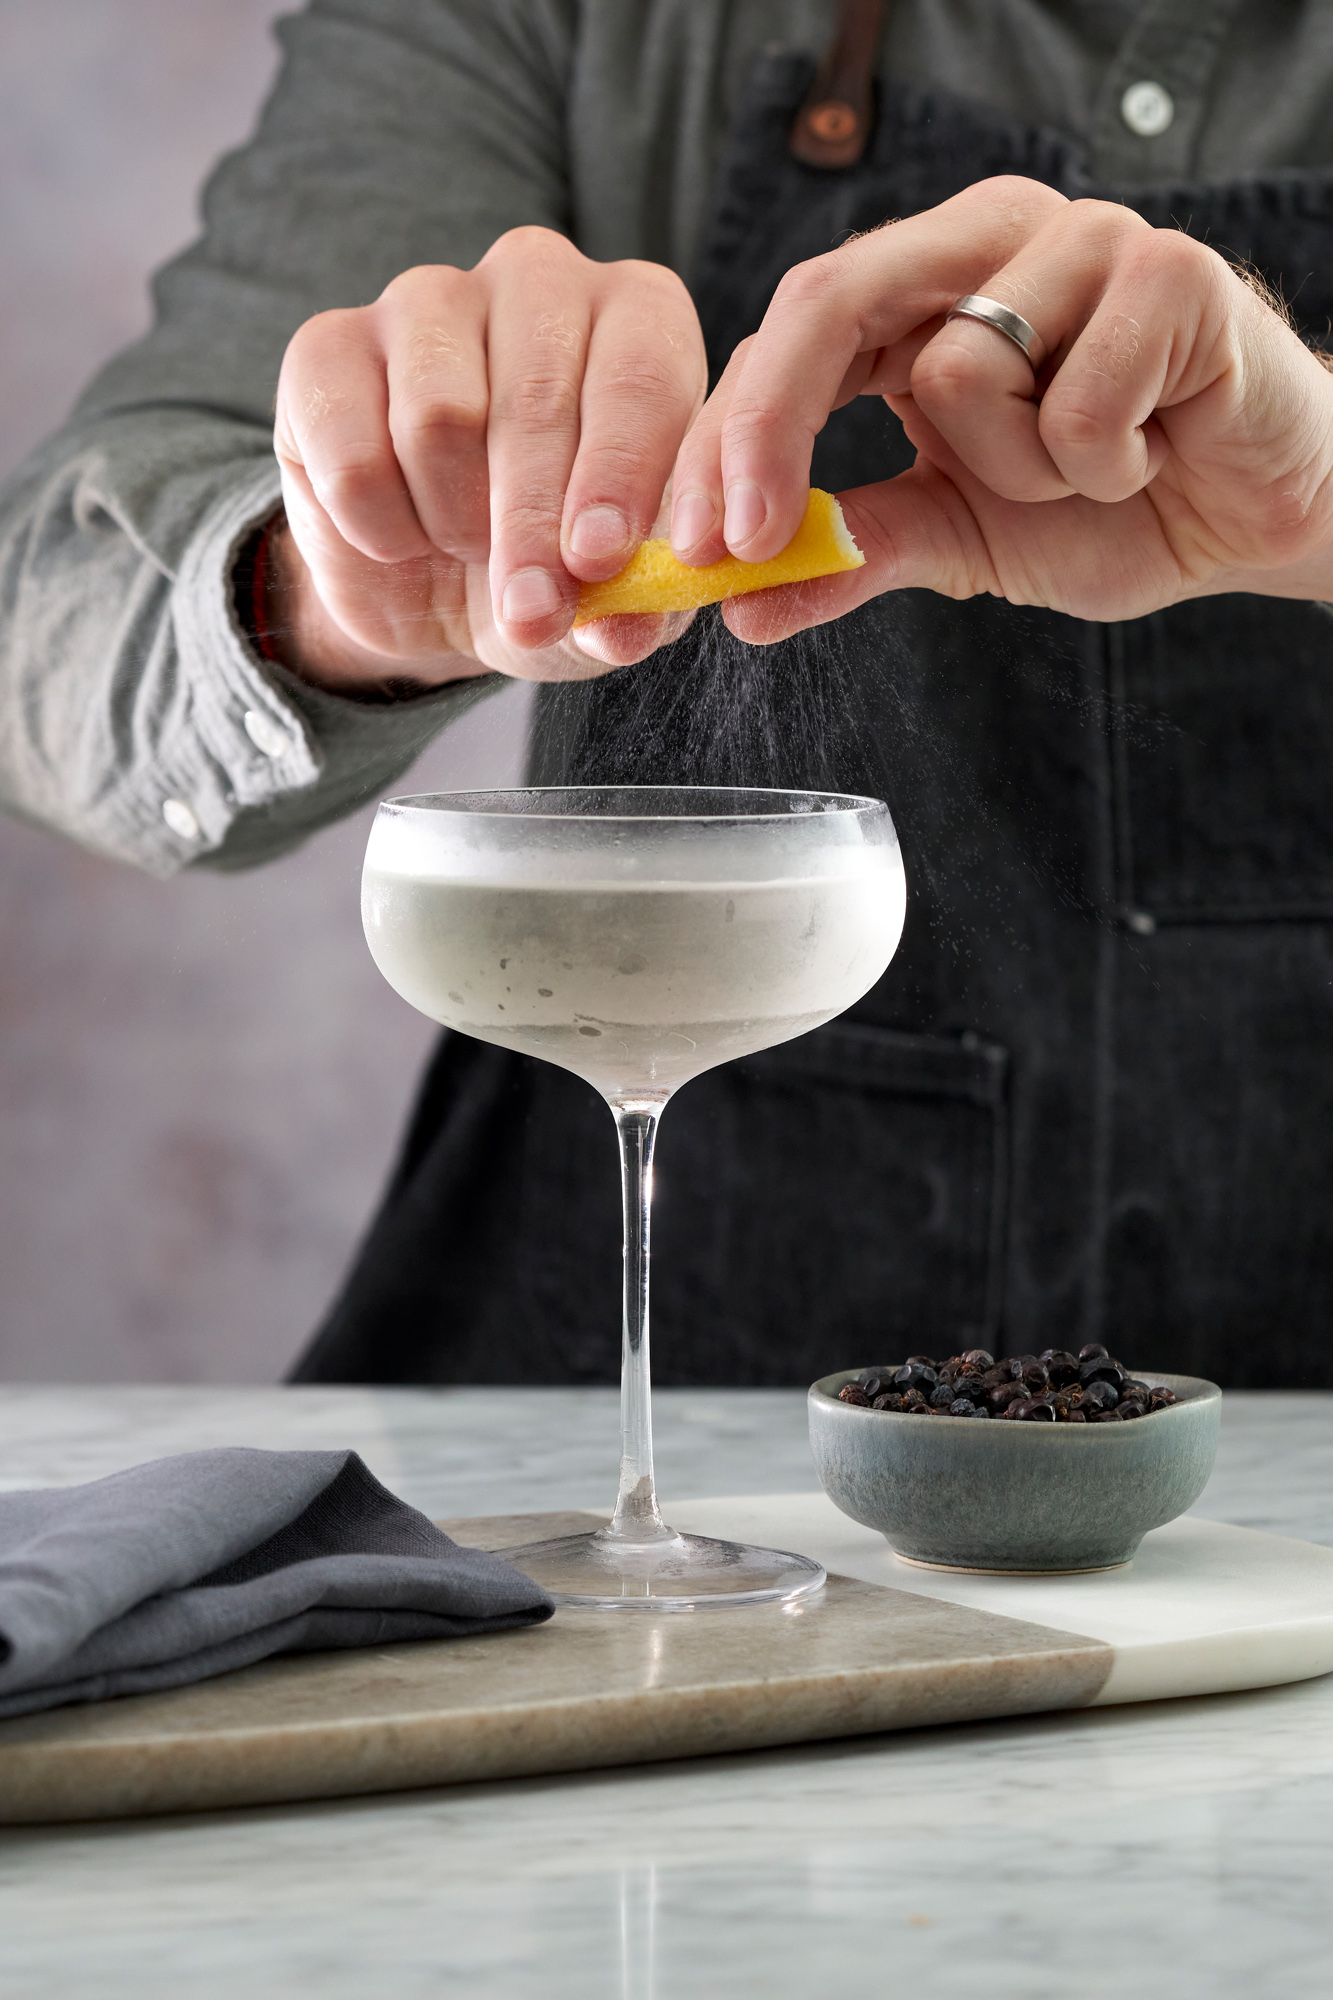 Martini garnished with a zest of citrus